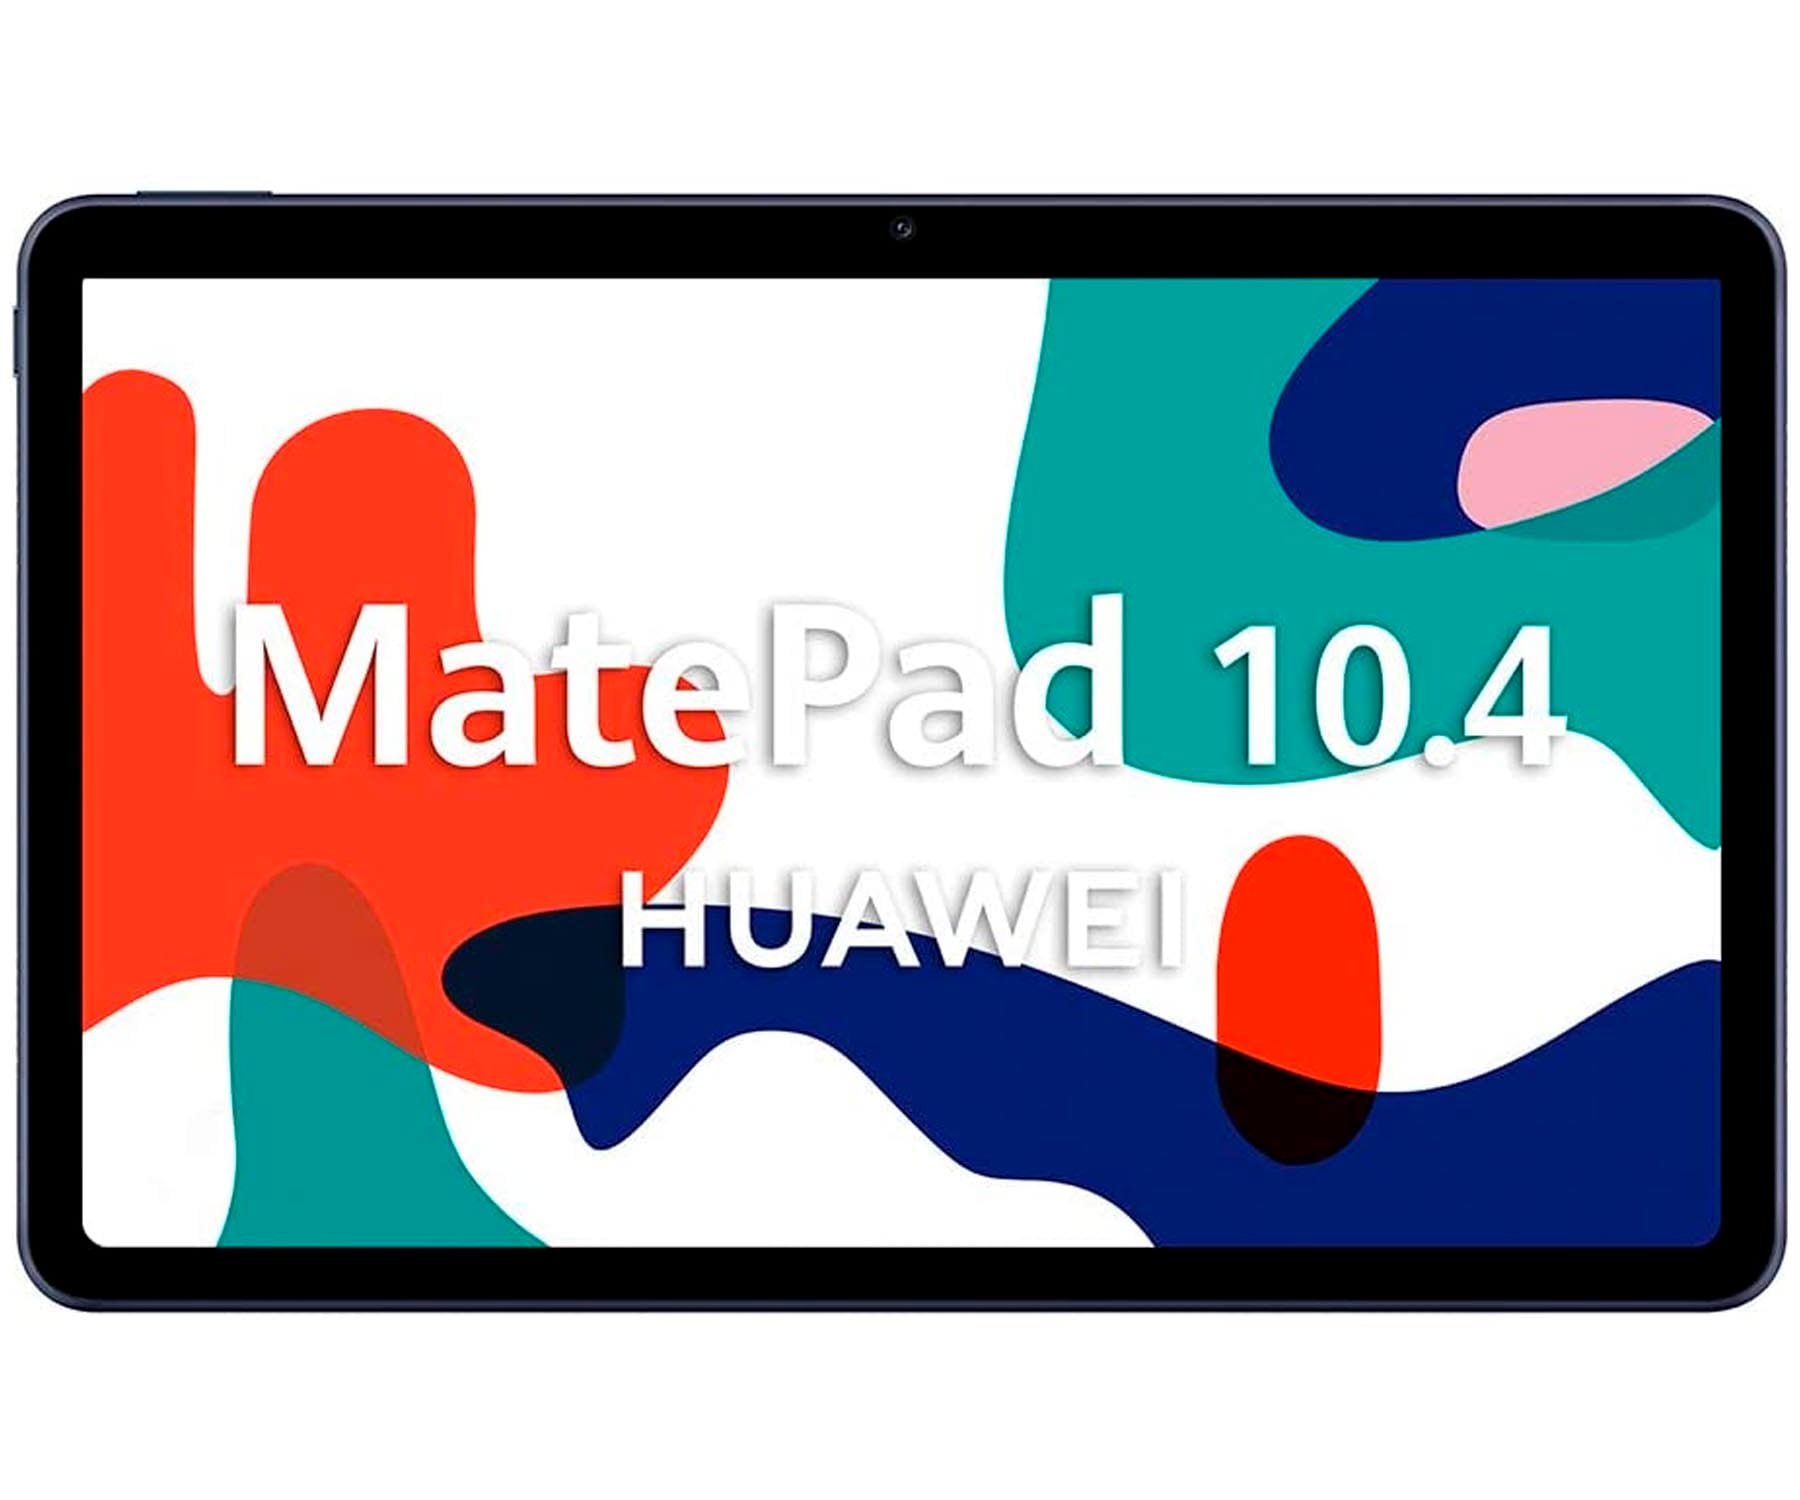 HUAWEI MATEPAD GRIS TABLET WIFI 10.4'' IPS FHD+ OCTACORE 32GB 3GB RAM CAM 8MP SELFIES 8MP